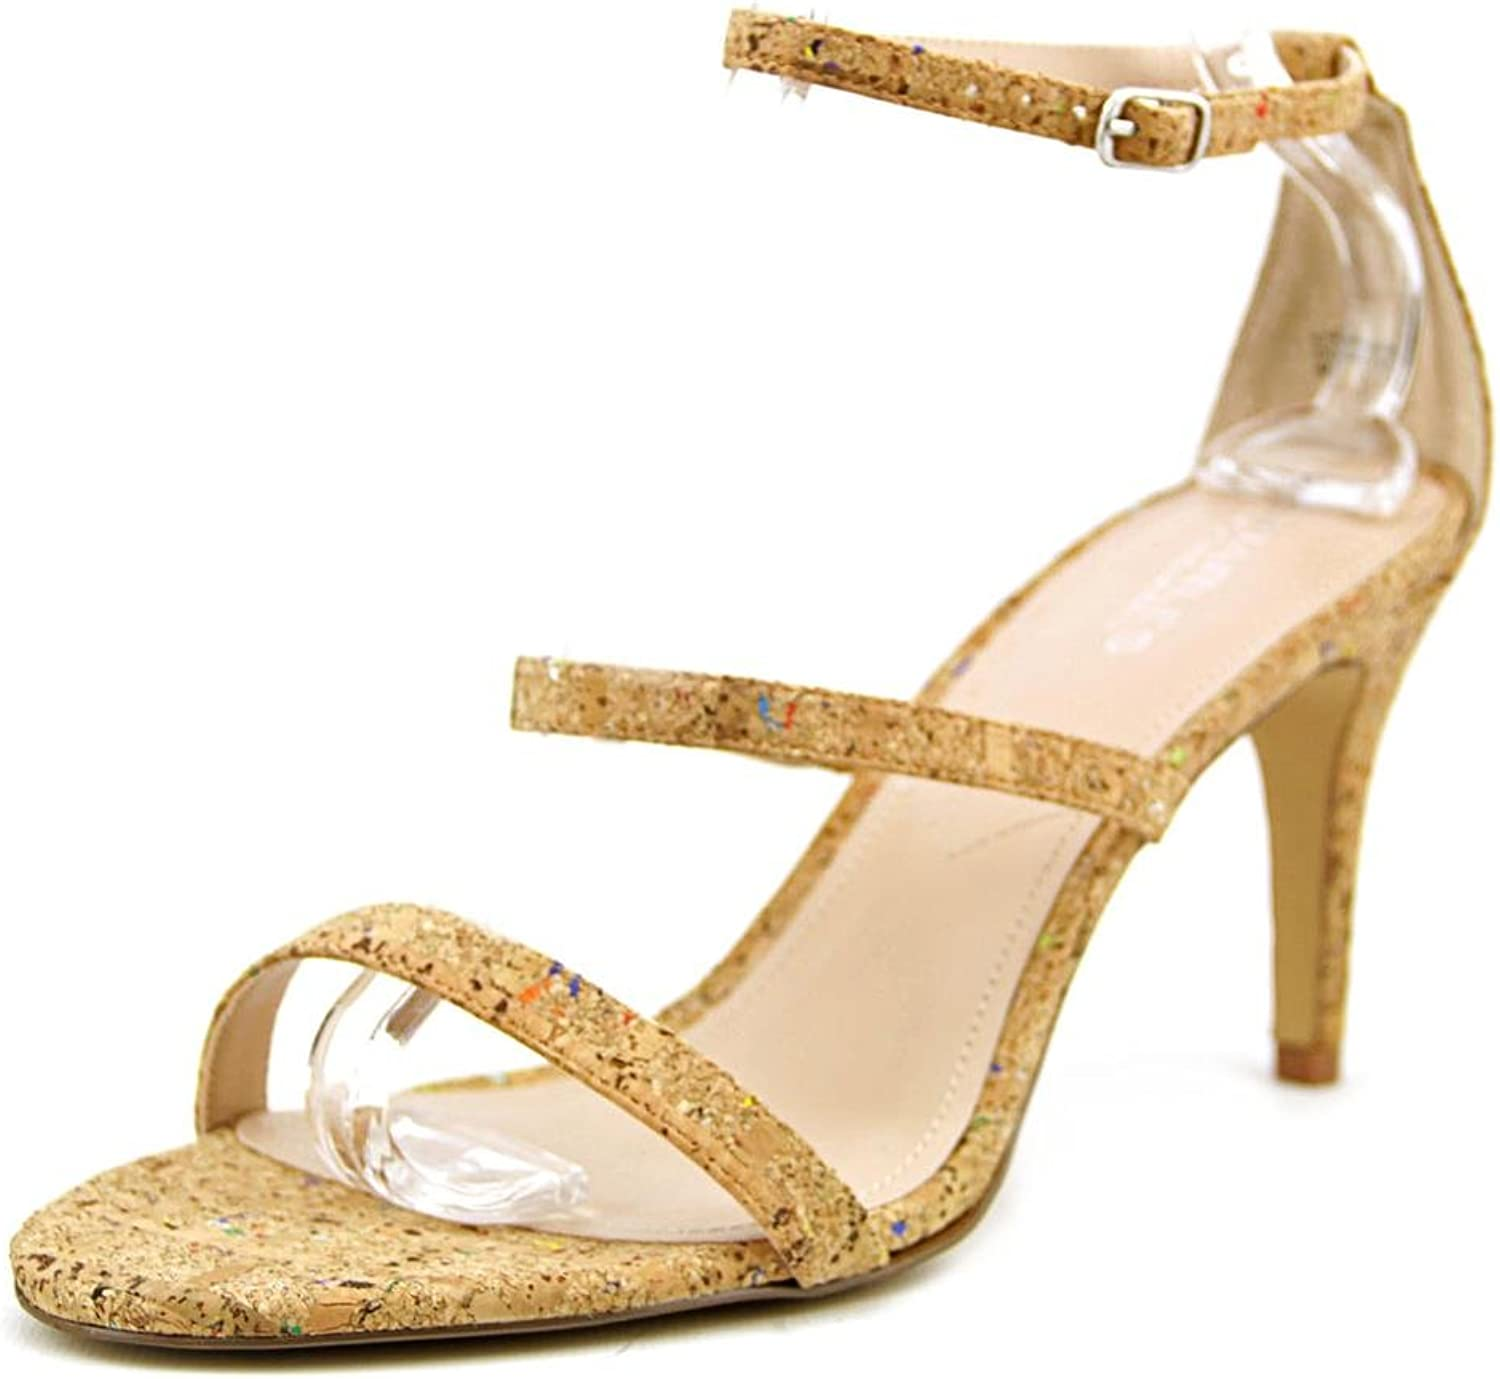 Charles by Charles David Women's Zion Ankle Strap Sandal